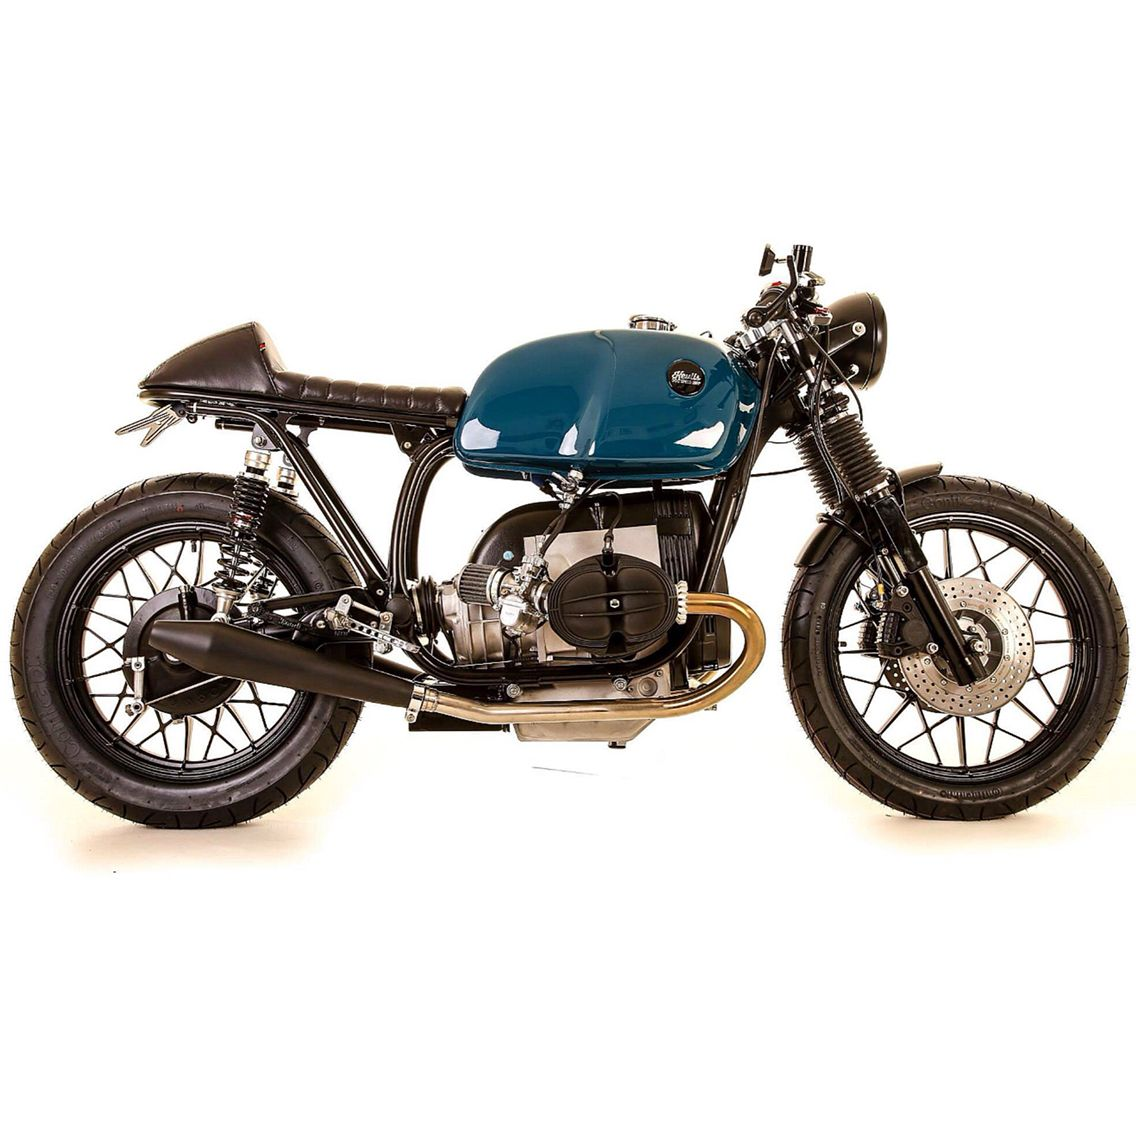 BMW R 80 Cafe Racer by Kevils Speed Shop, United KingDom